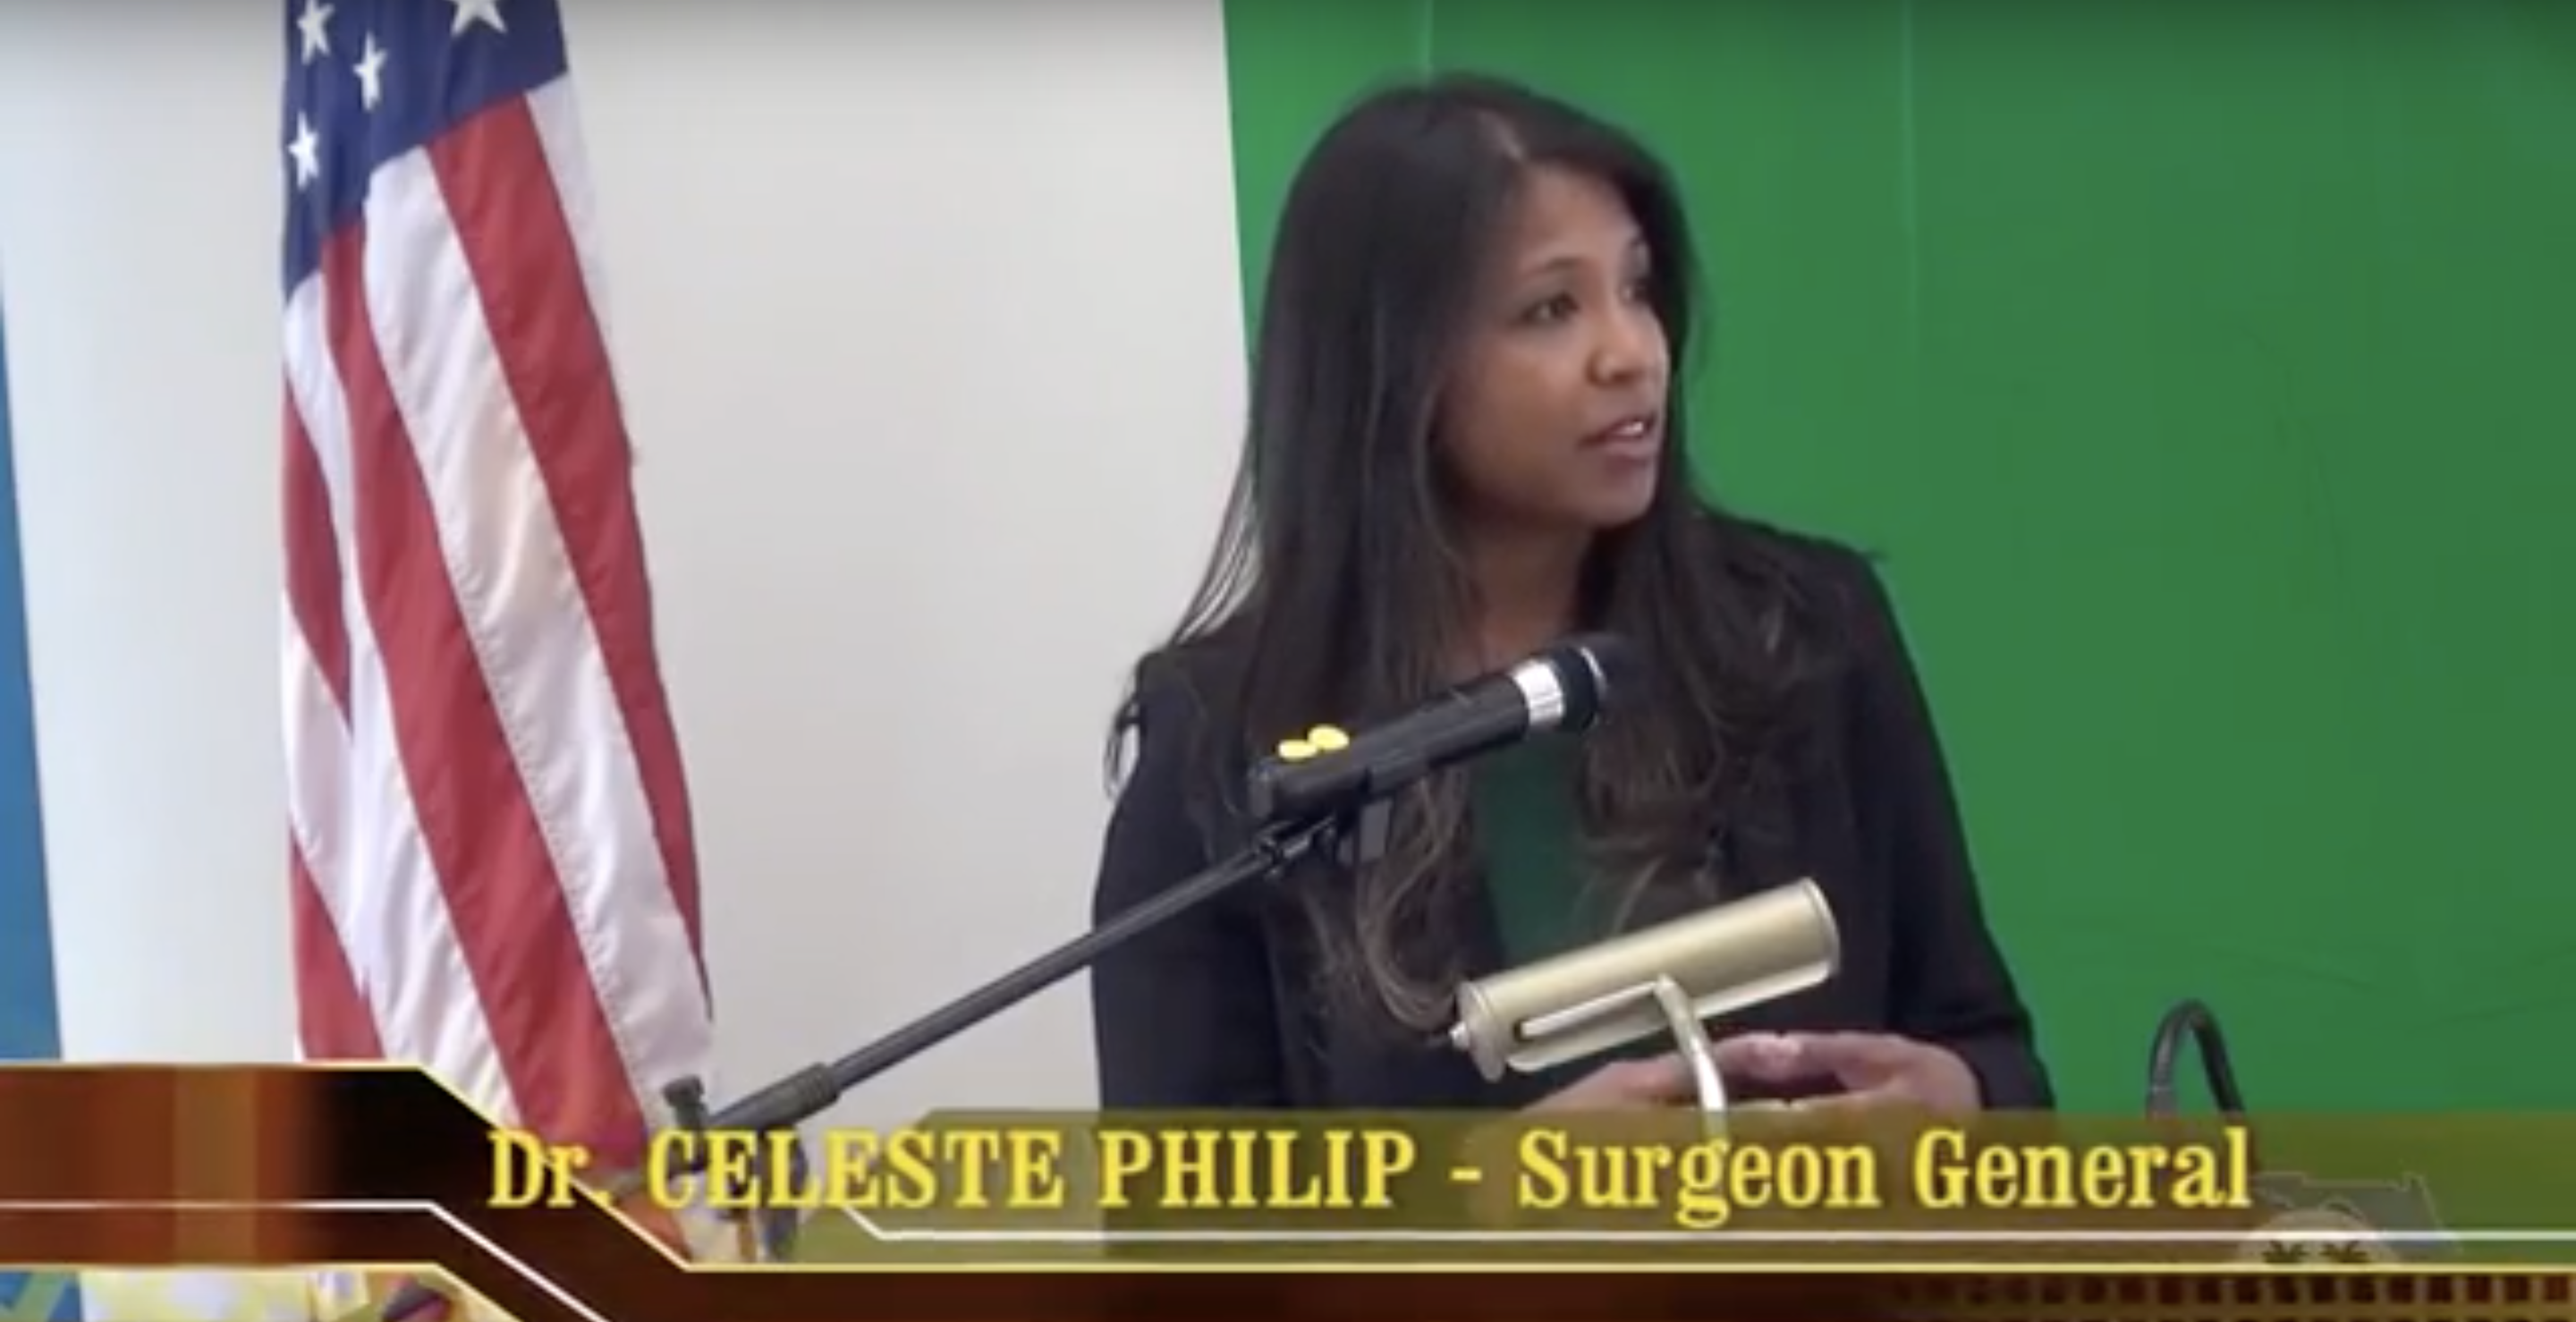 Surgeon General Resigns From Office Effective Jan. 8